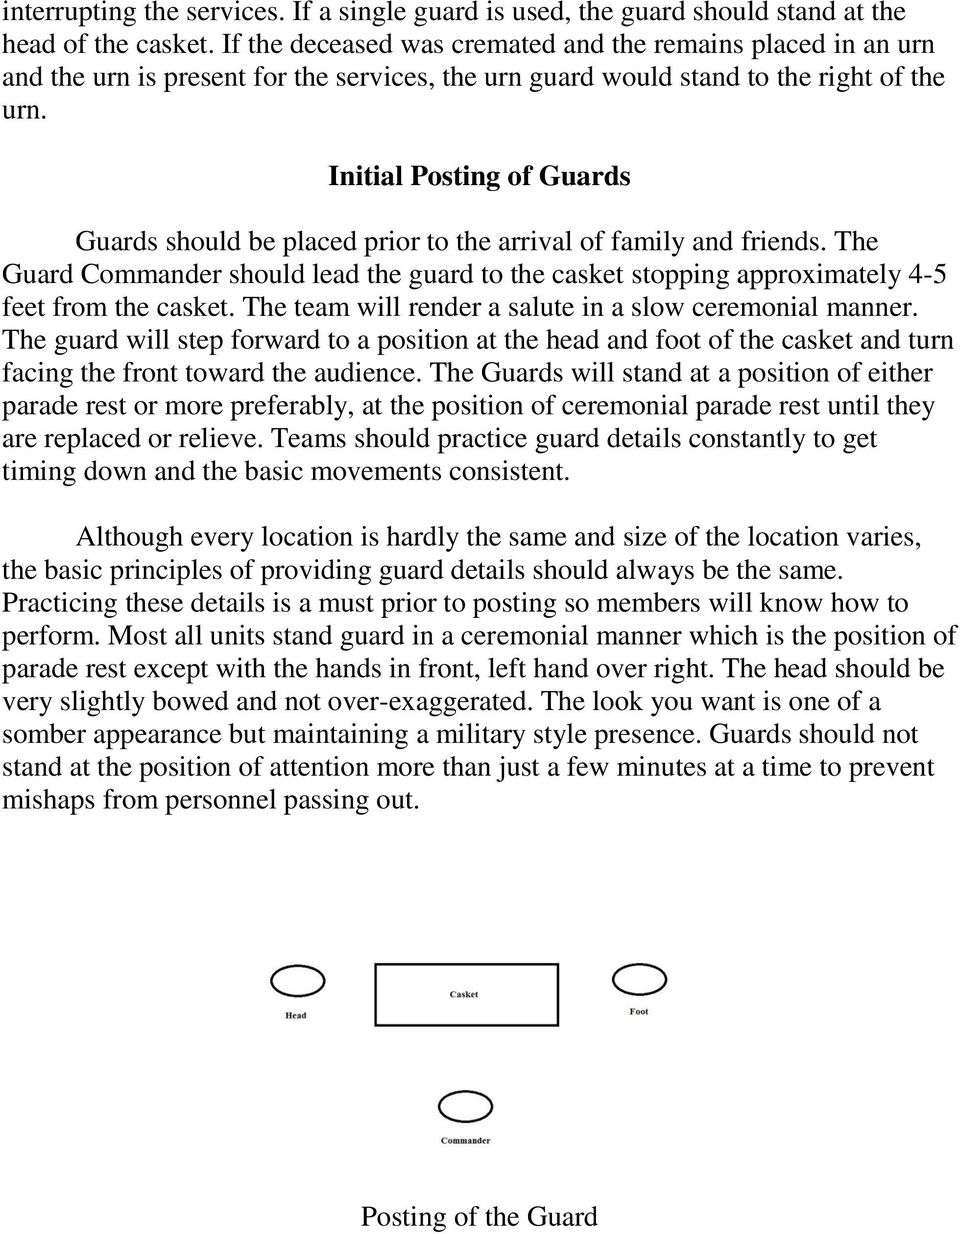 Initial Posting of Guards Guards should be placed prior to the arrival of family and friends. The Guard Commander should lead the guard to the casket stopping approximately 4-5 feet from the casket.